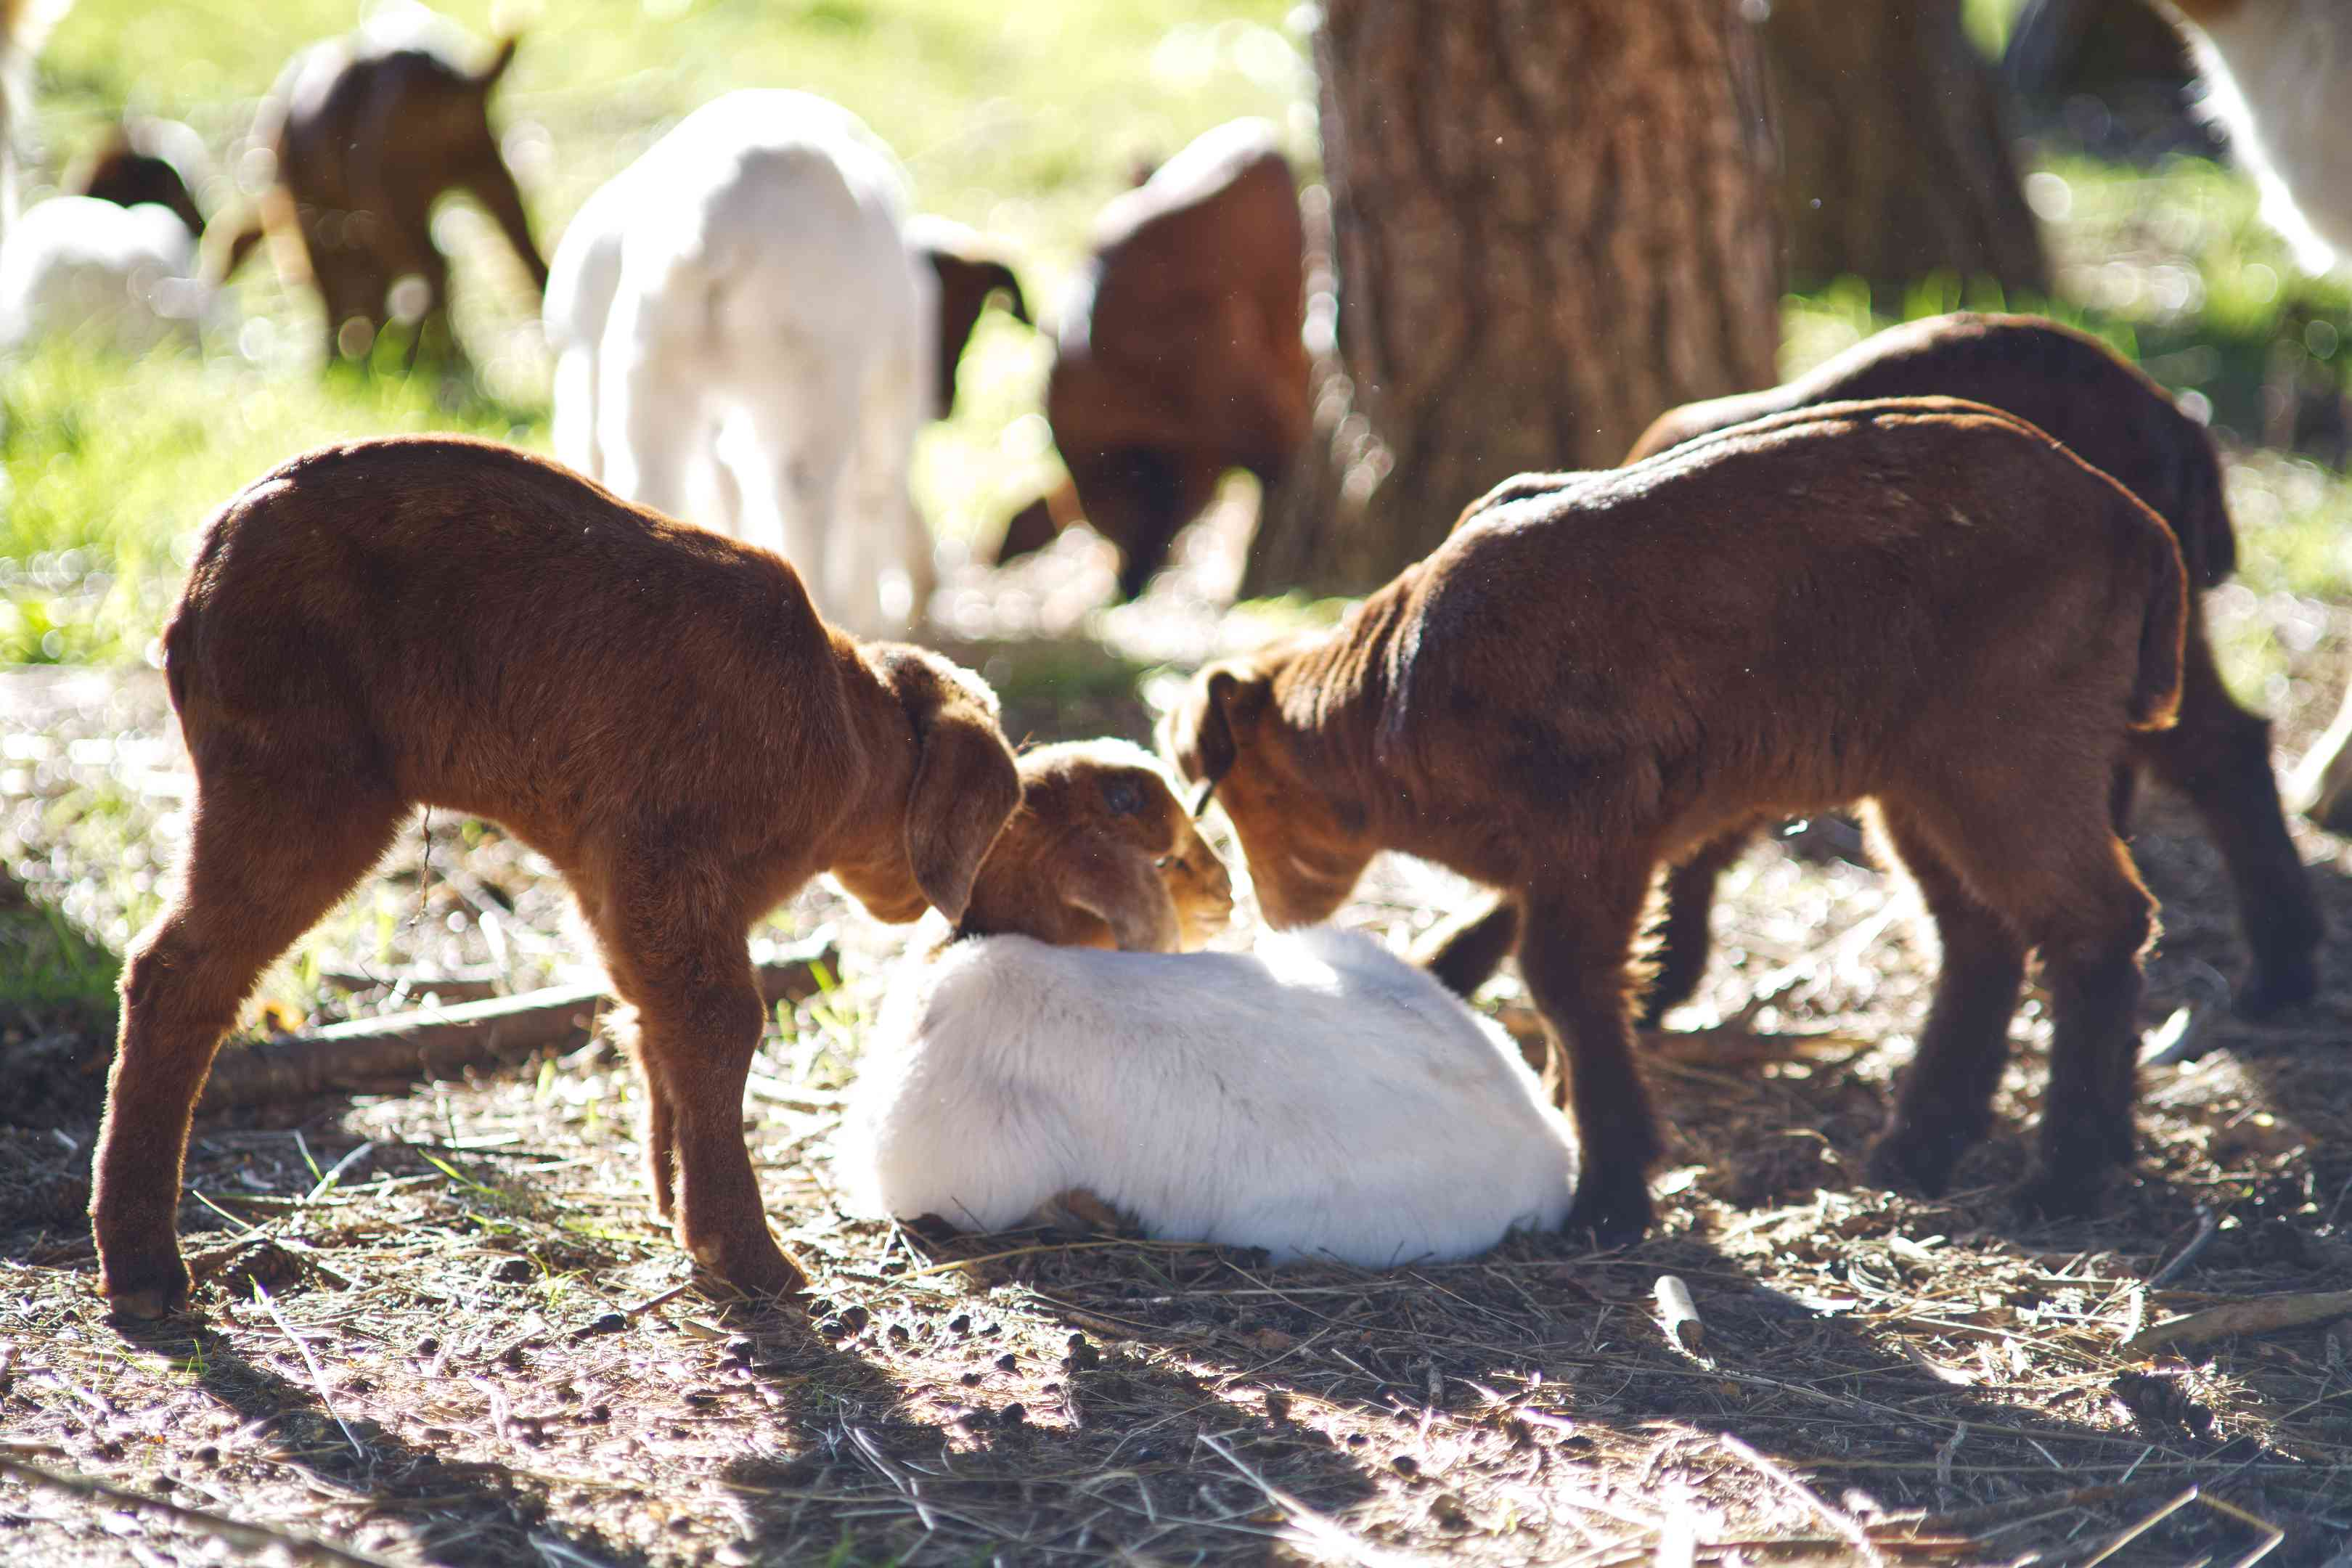 group of baby goats outside, with two baby goats smelling a sibling in grass